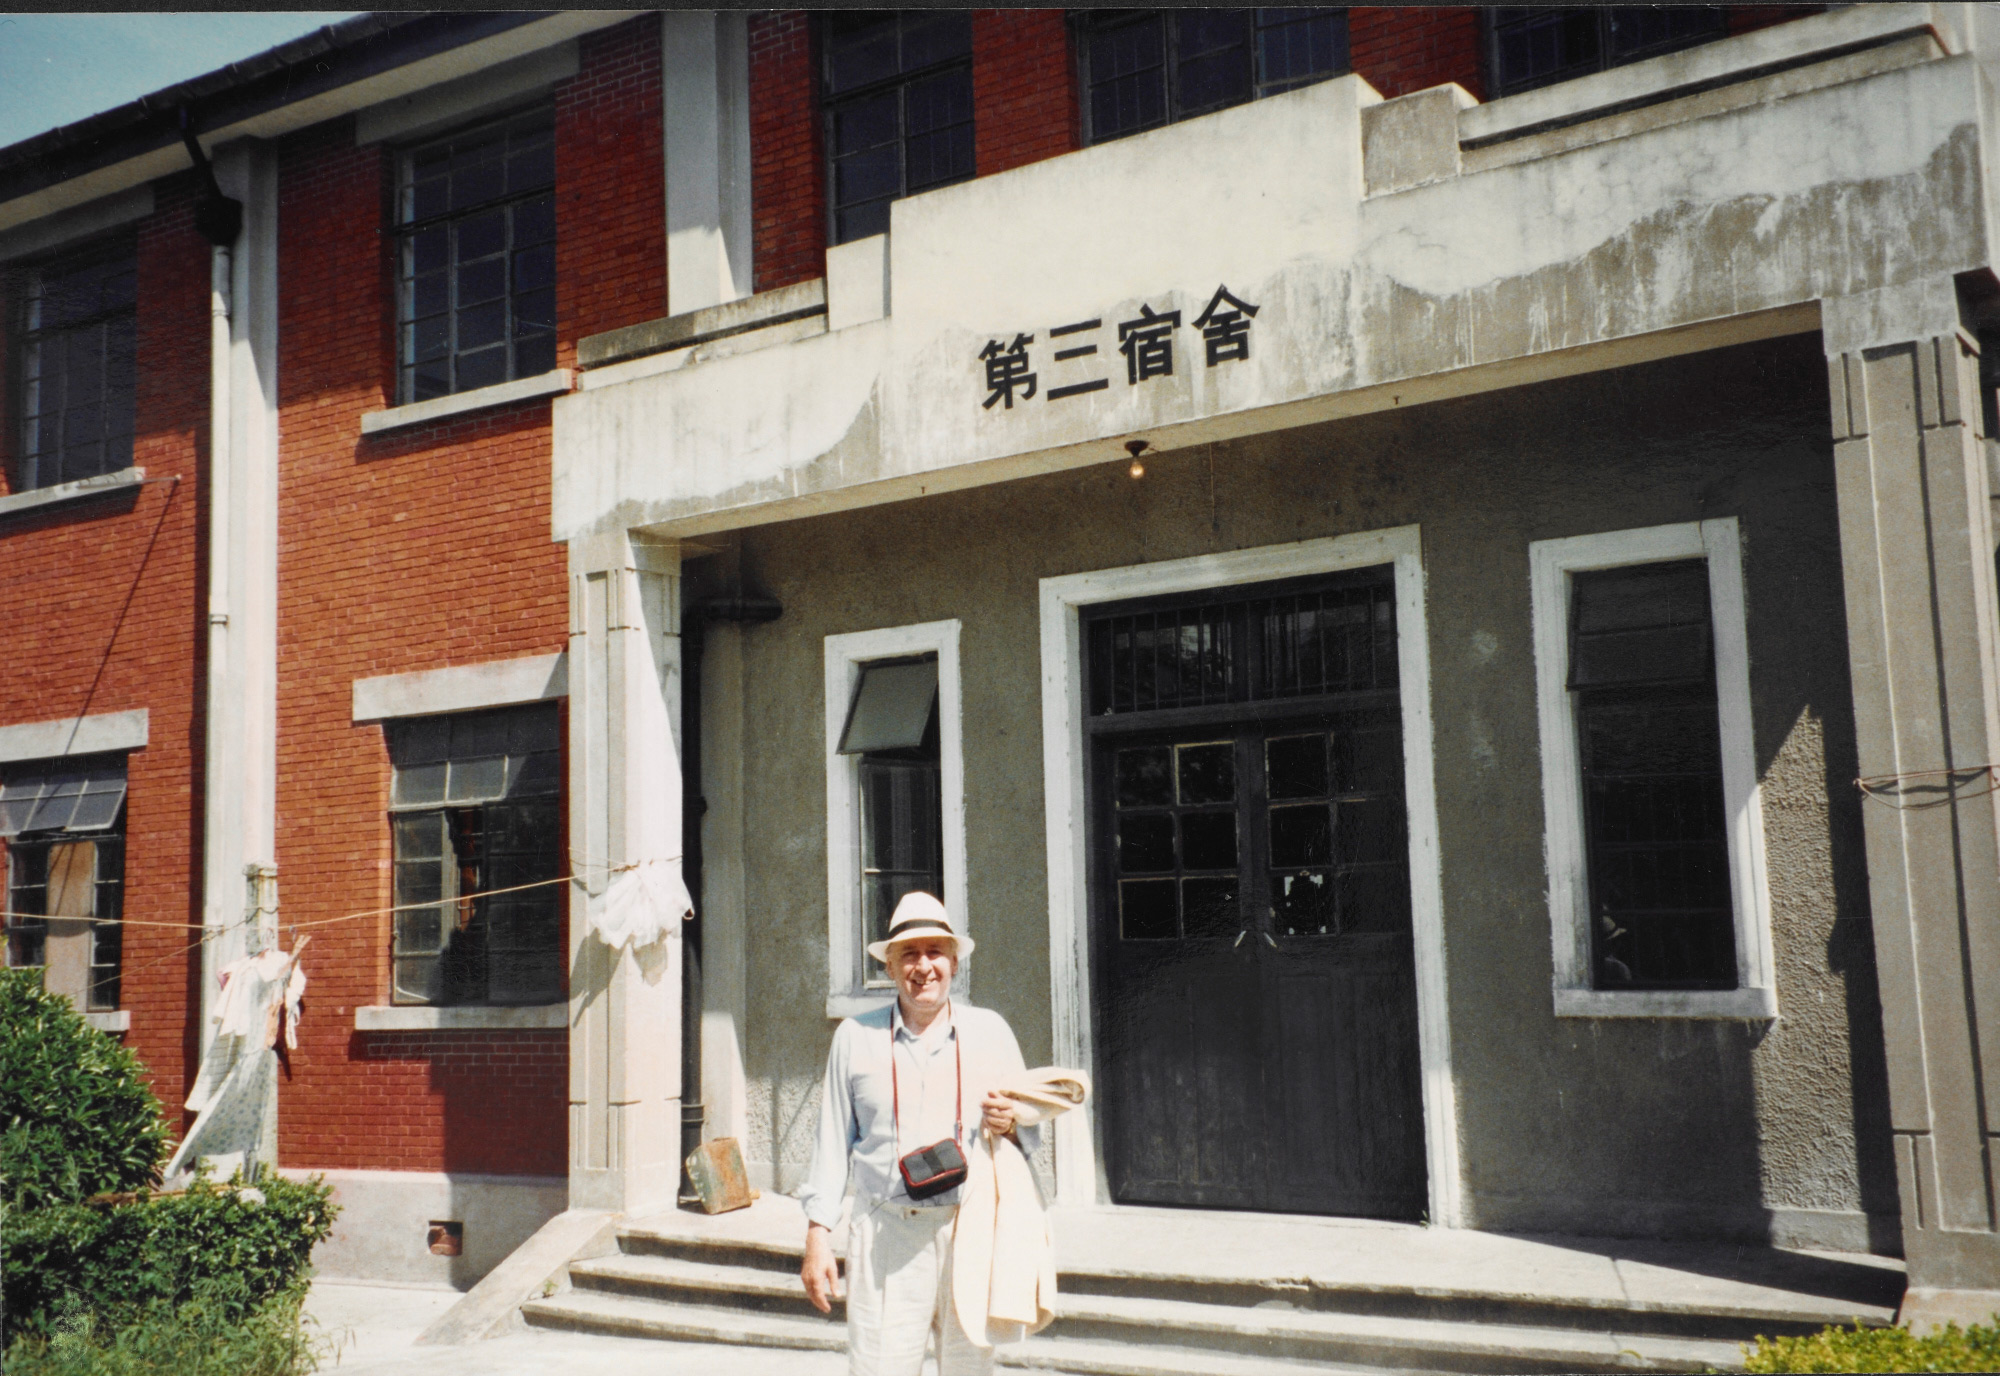 Photographs showing the Lunghua Civilian Assembly Centre, where J G Ballard was interned as a child